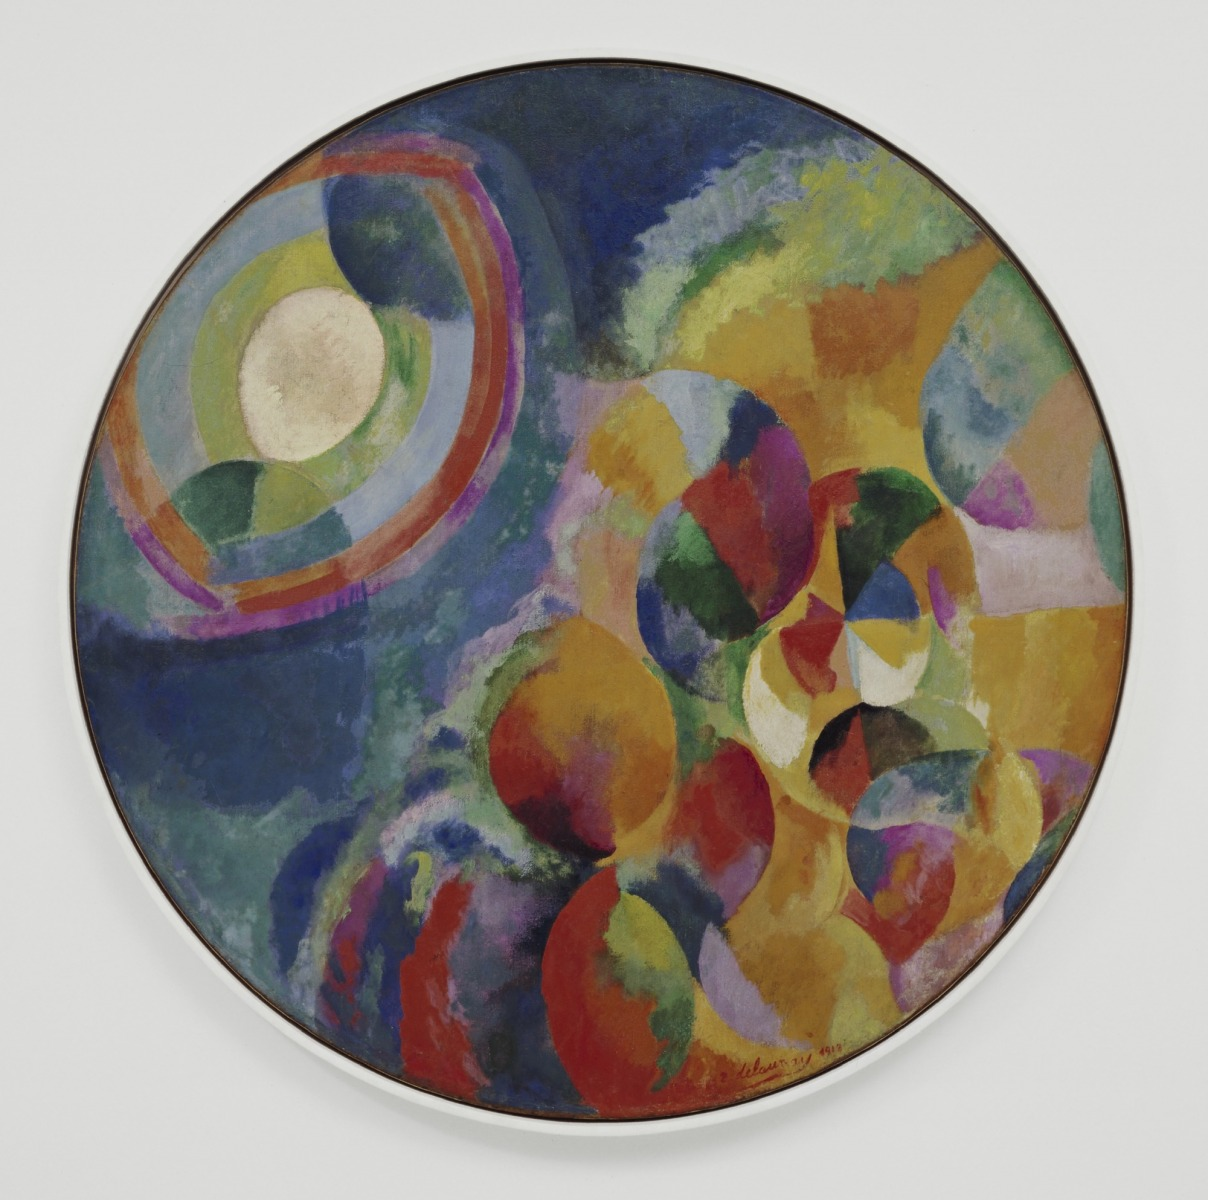 Robert Delaunay, Simultaneous Contrasts: Sun and Moon Paris